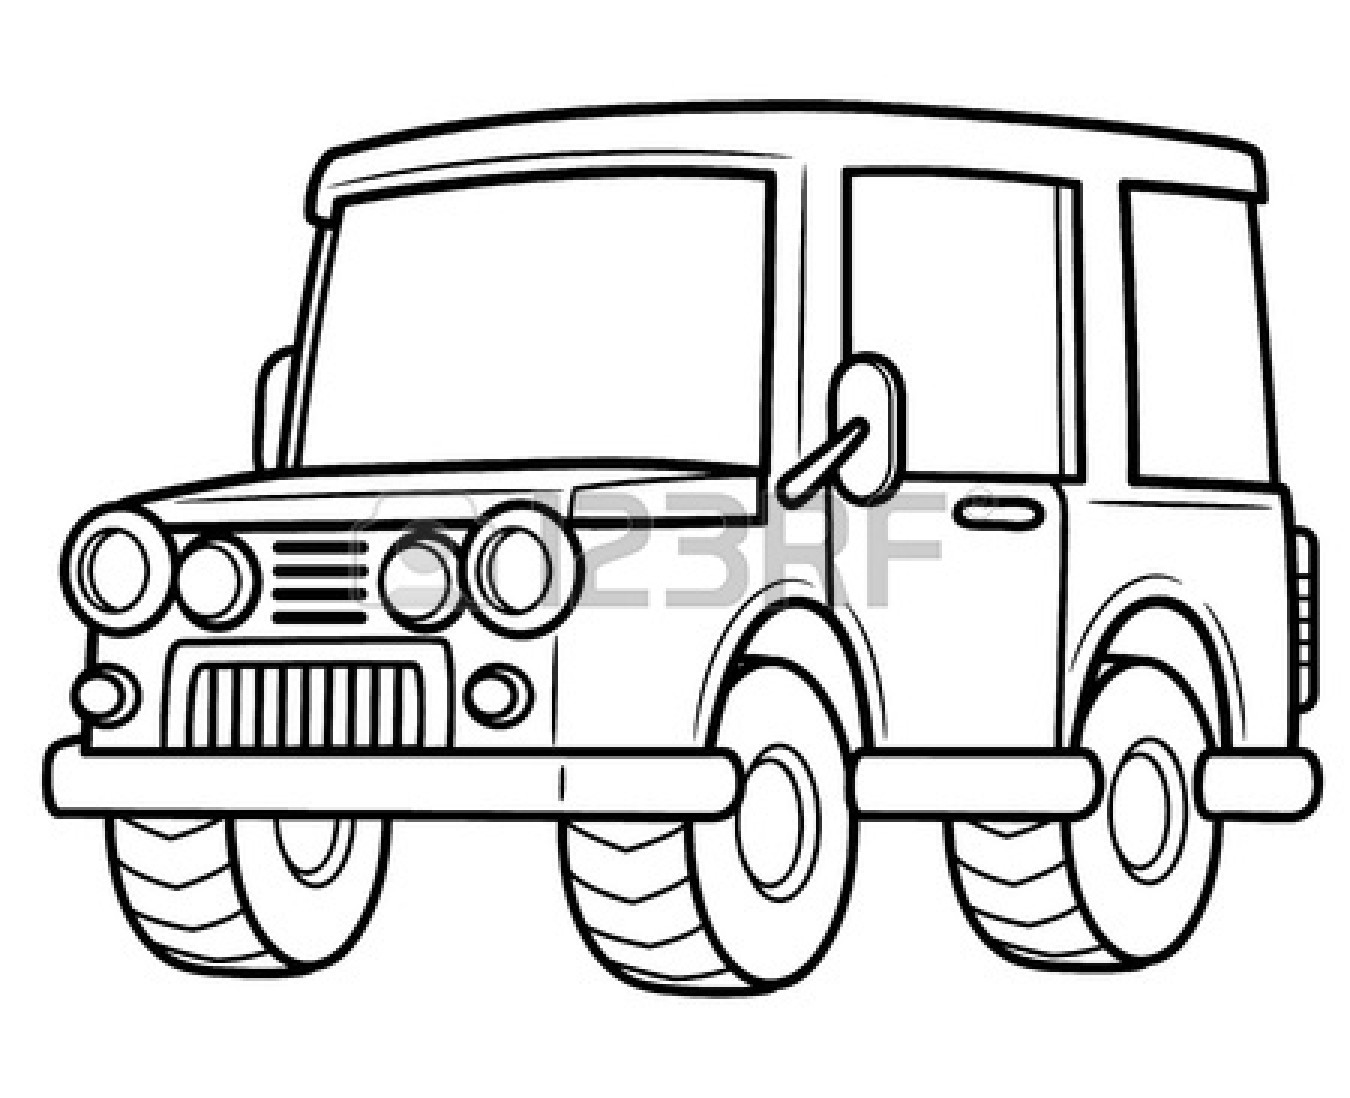 Tailgate Decal likewise Car Brands Coloring Pages 2 besides Black And White Ford Logo 55Iop 6h735gspeDNgv56K4cY6wUdW59C9CTyUQqsBA moreover Gm Starter Solenoid Wiring Diagram together with Mitsubishi Heat Pump Wiring Diagram. on dodge truck symbol